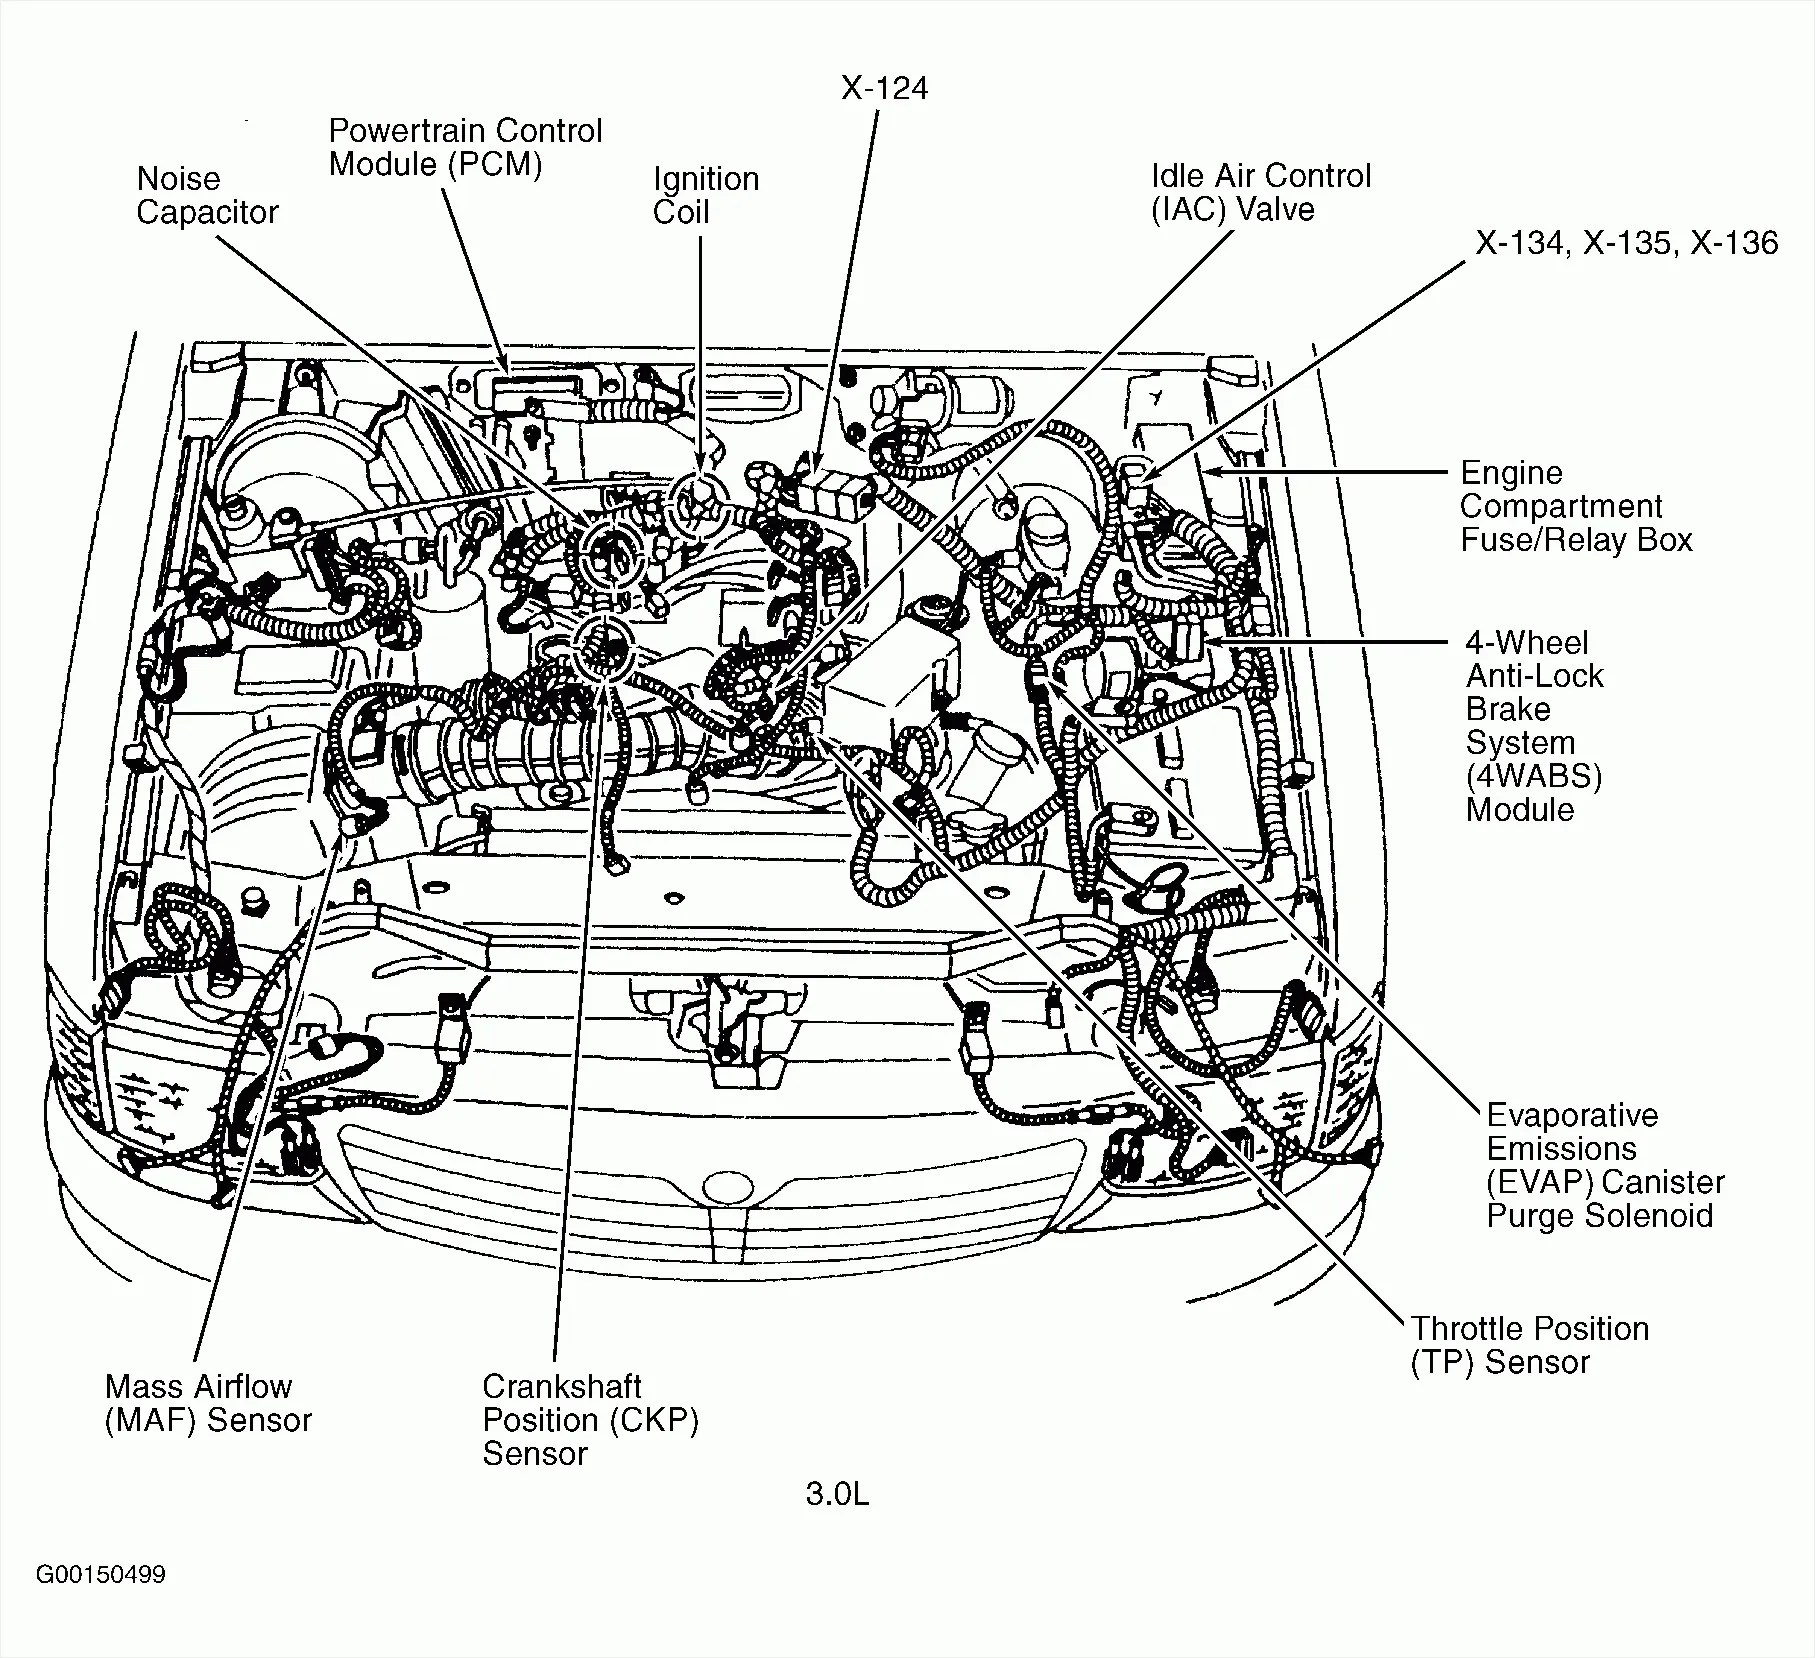 1968 cadillac engine diagram wiring diagram details 4 9l cadillac engine diagram s [ 1815 x 1658 Pixel ]